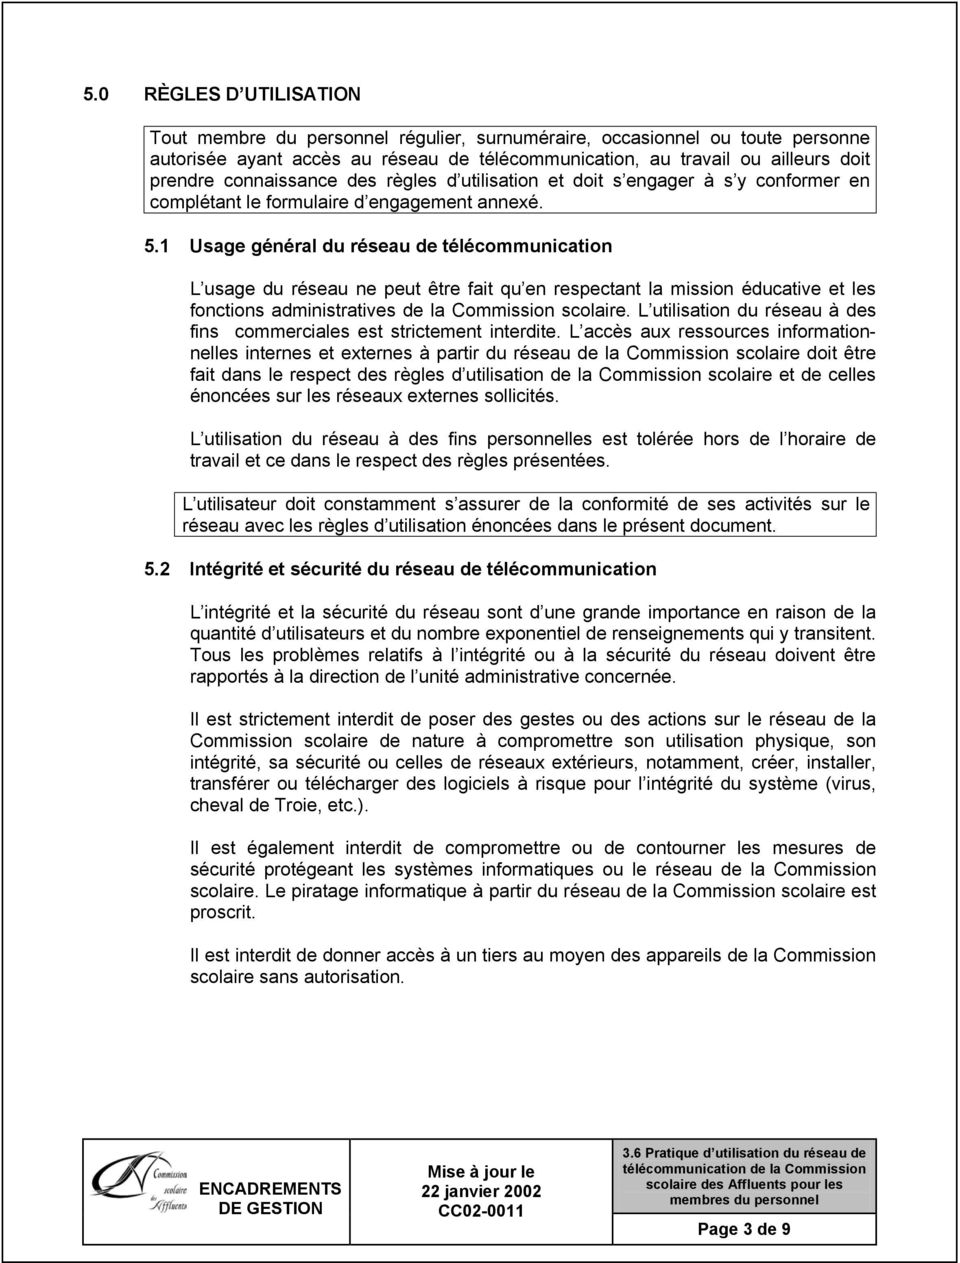 1 Usage général du réseau de télécommunication L usage du réseau ne peut être fait qu en respectant la mission éducative et les fonctions administratives de la Commission scolaire.